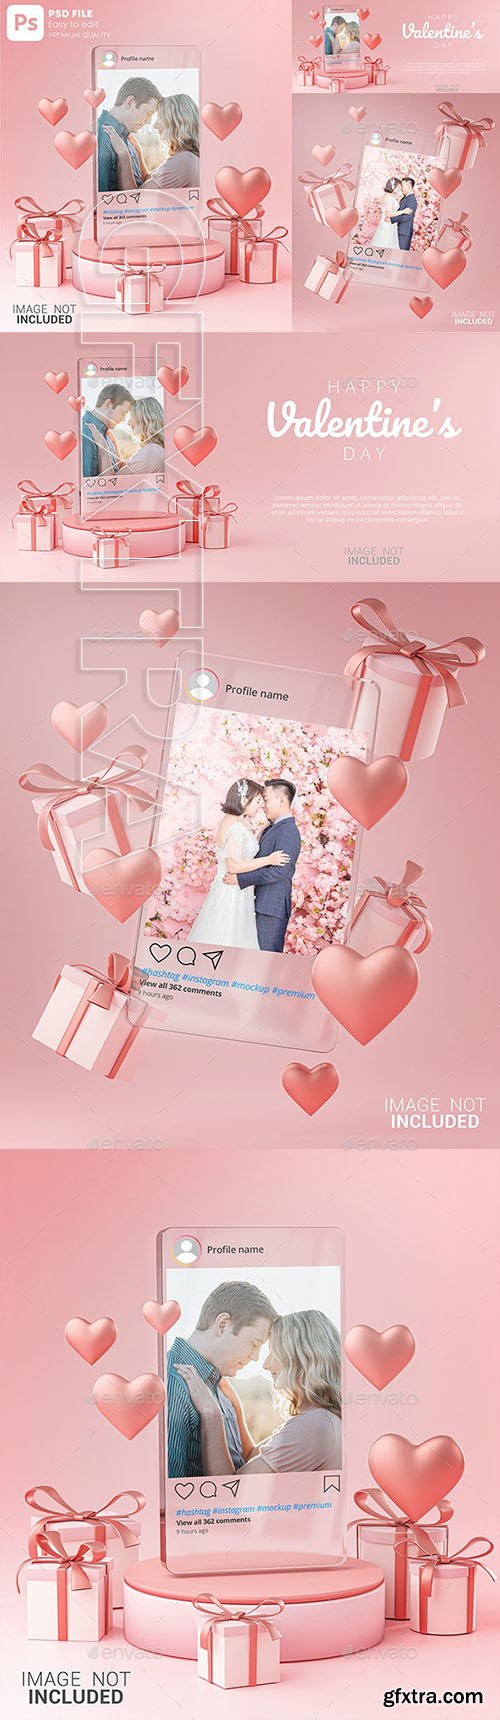 GraphicRiver - Instagram Post Mockup on Glass Template Valentine Wedding Love Heart Shape and Gift Box 3D Rendering 30090315